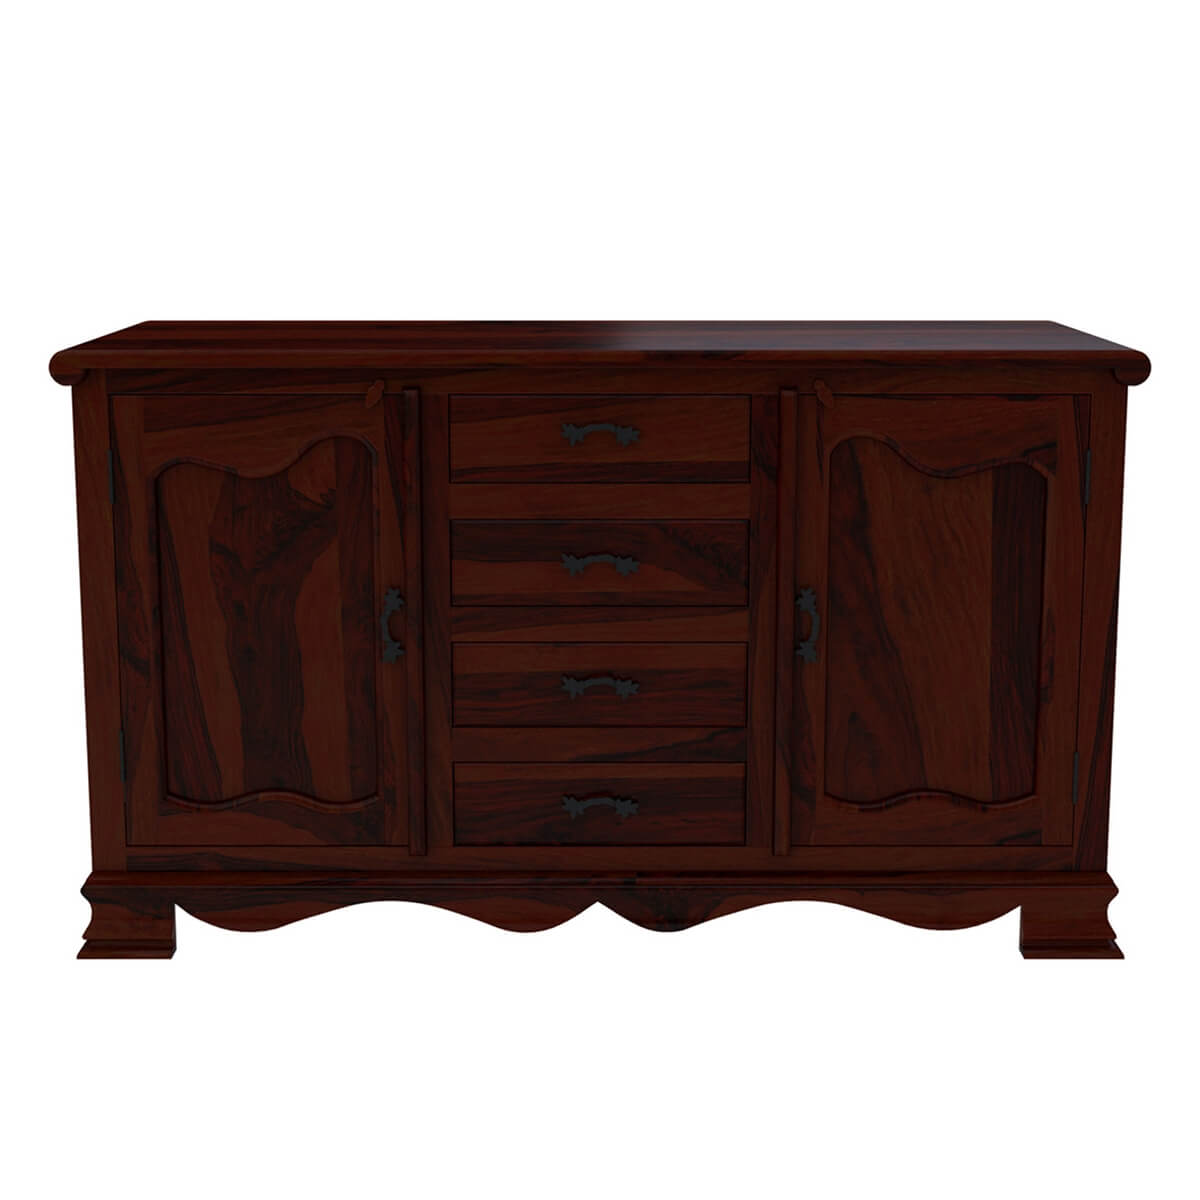 French Solid Rosewood Buffet Sideboard Dining Room Cabinet